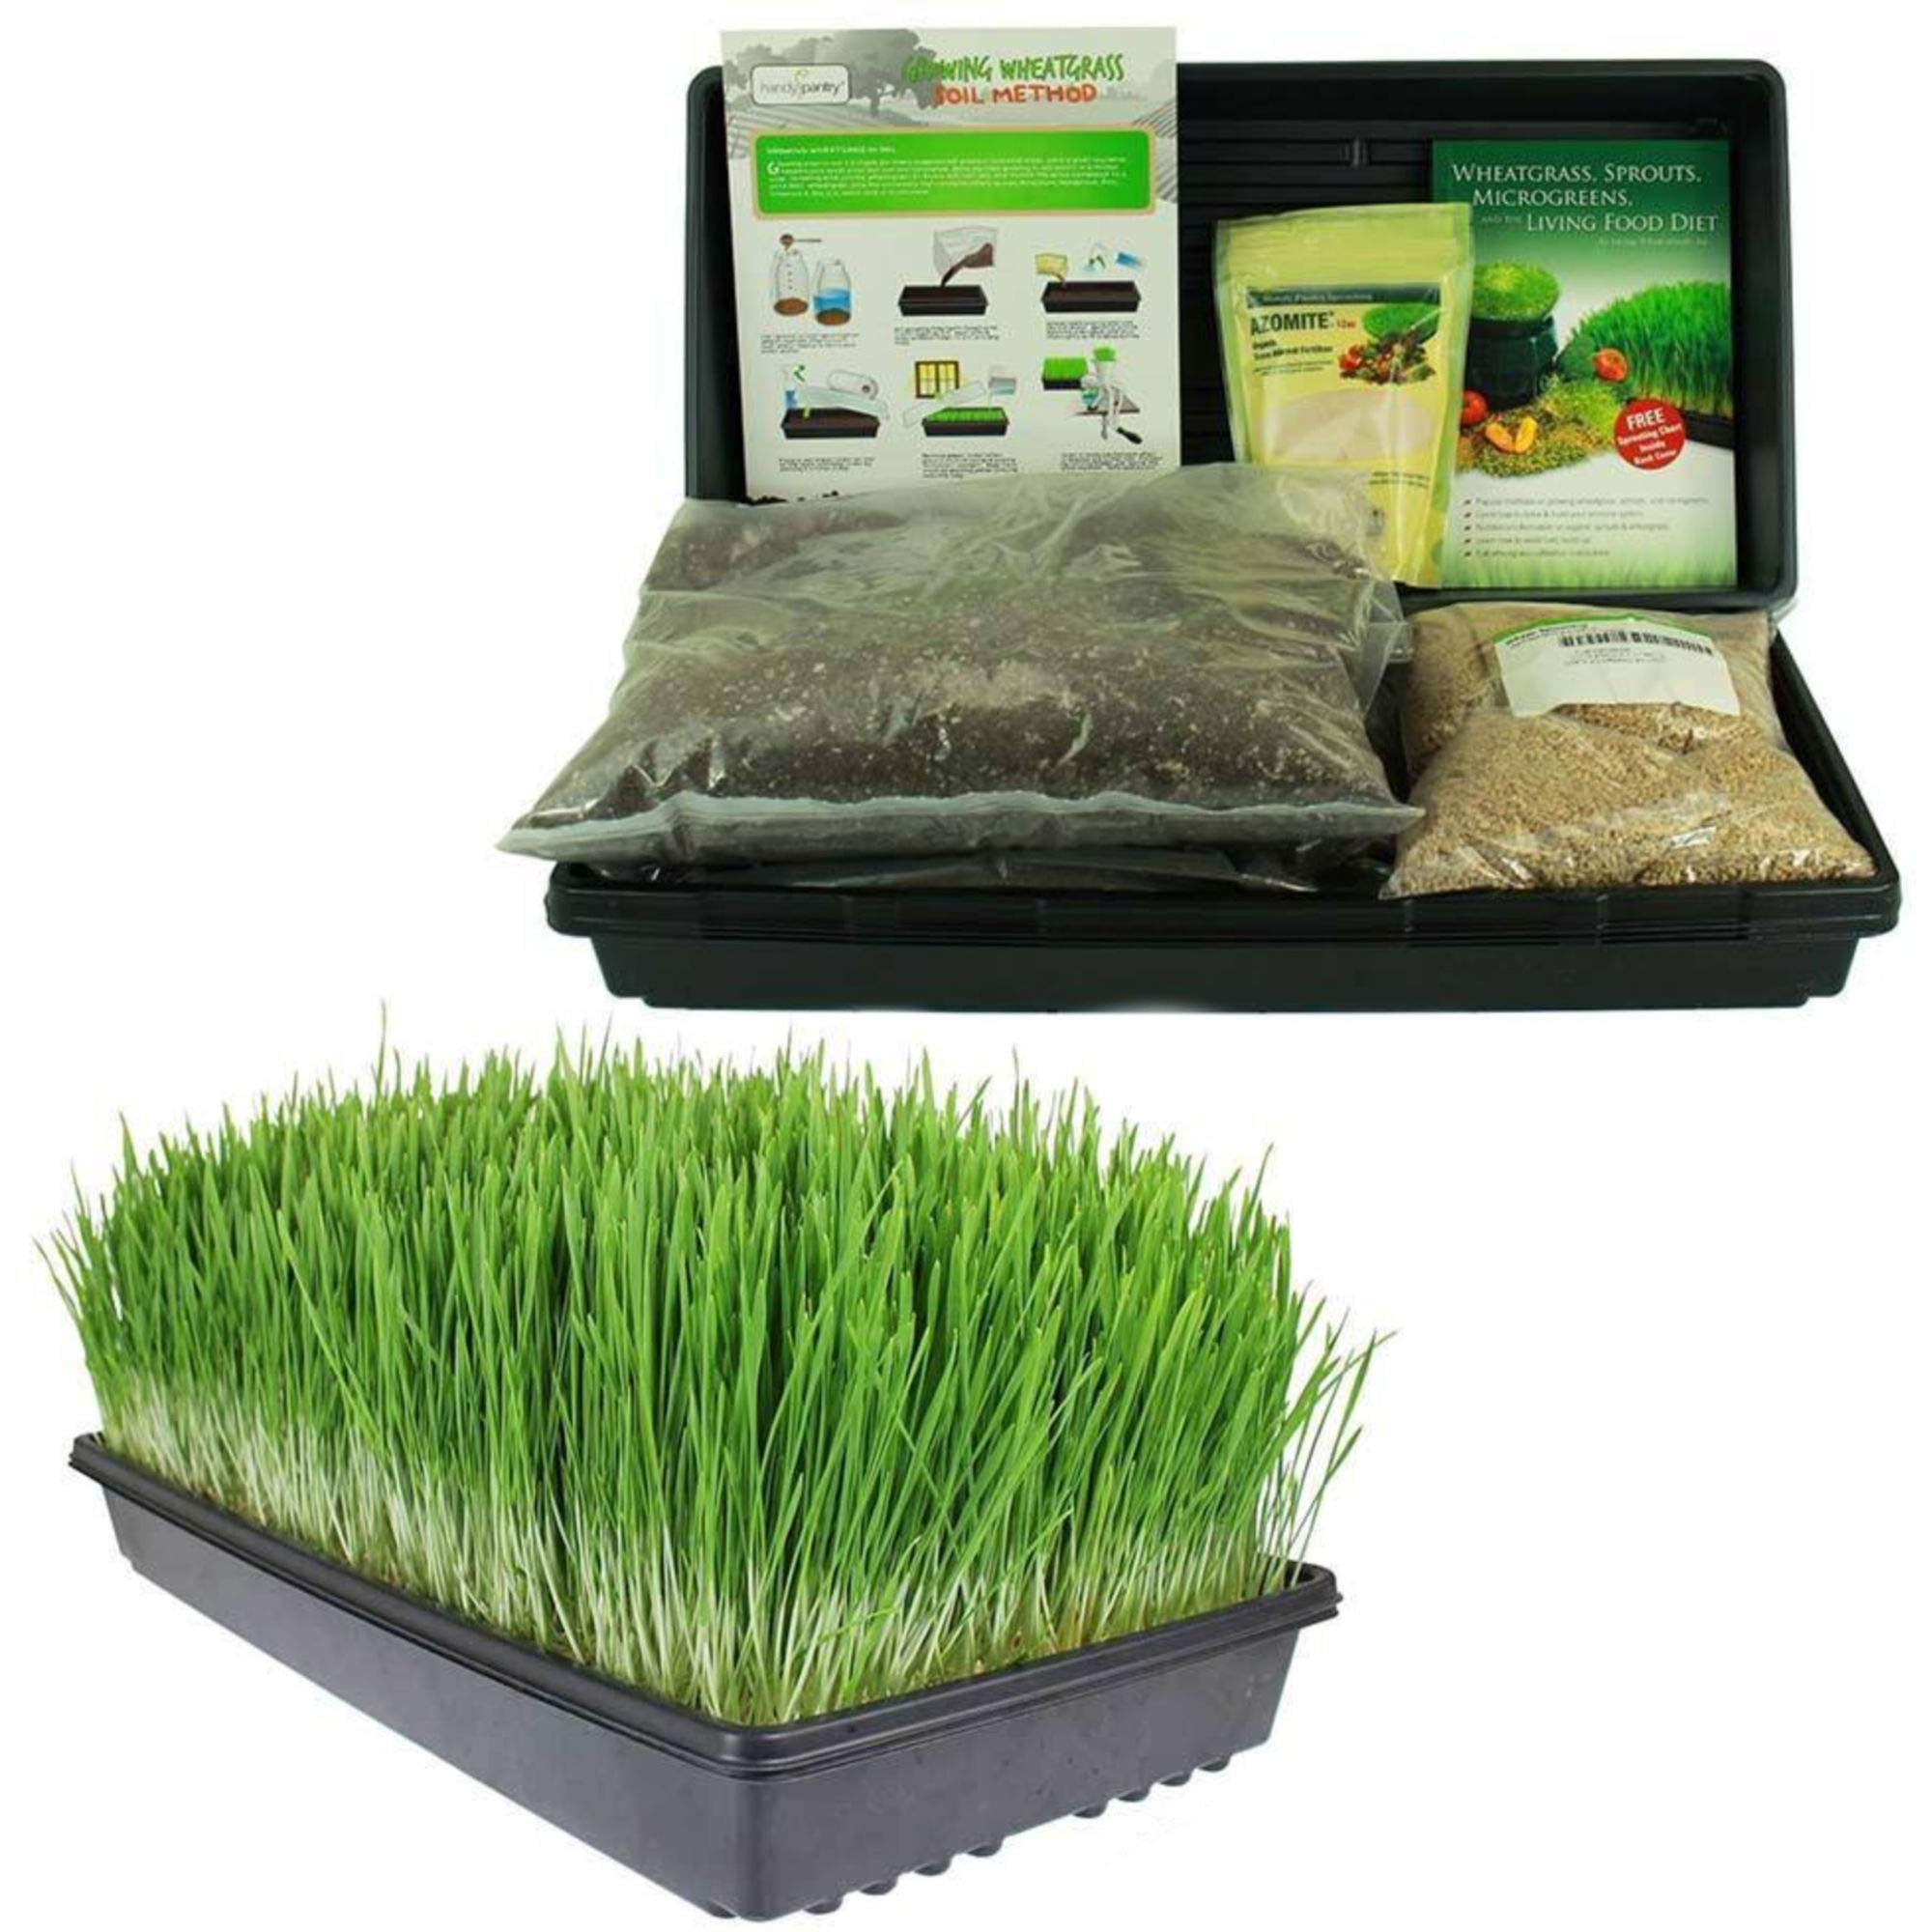 Certified Organic Wheatgrass Growing Kit | Grow & Juice Wheat Grass: Trays, Seed, Soil, Instructions, Wheatgrass Book, Trace Mineral Fertilizer & More